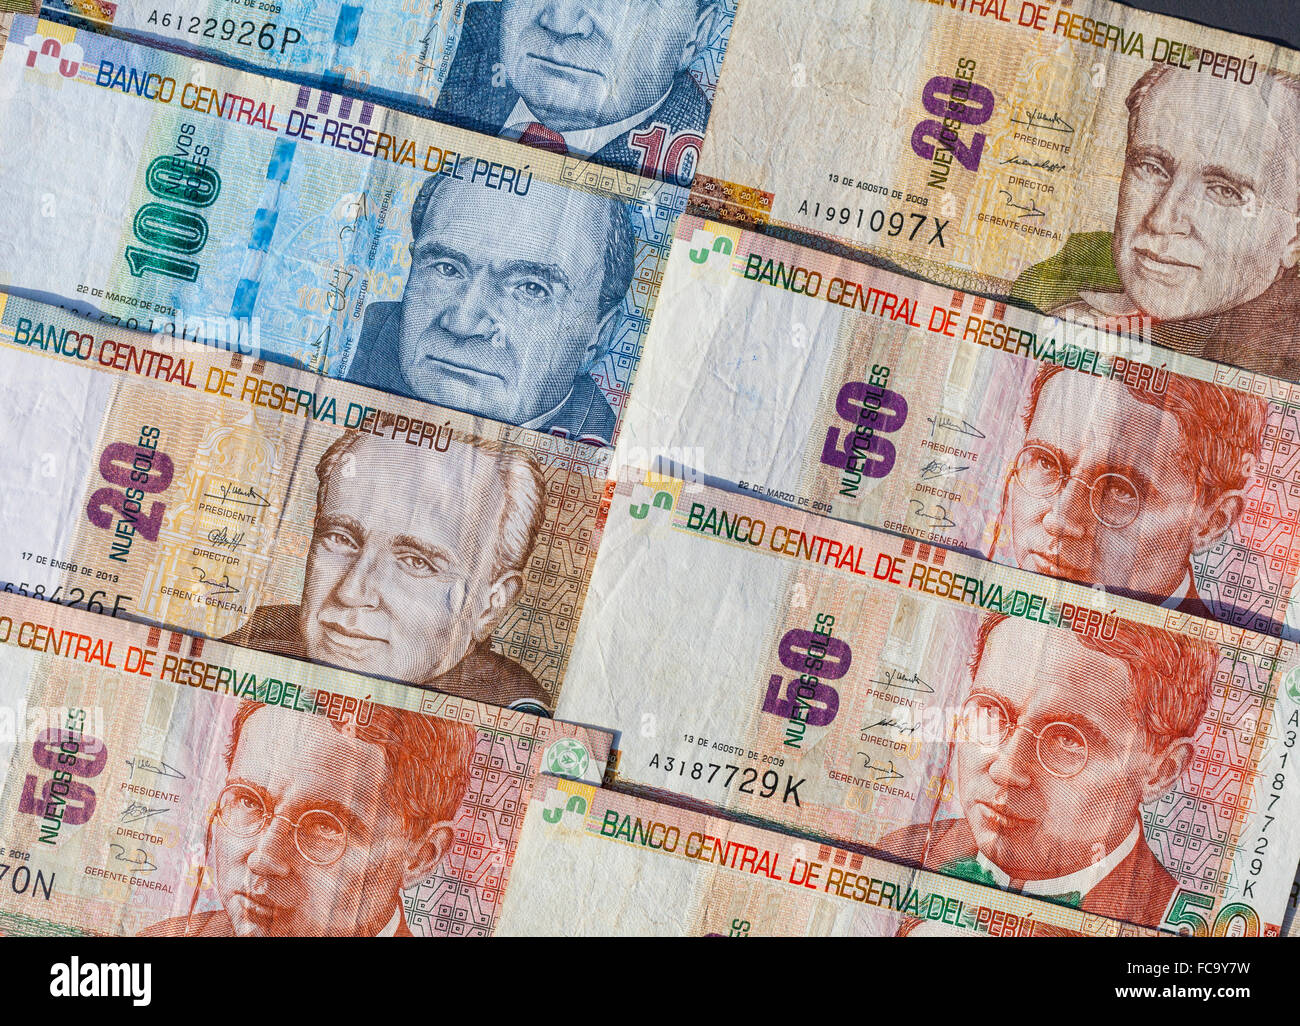 Monnaie Nuevo sol péruvien Photo Stock - Alamy